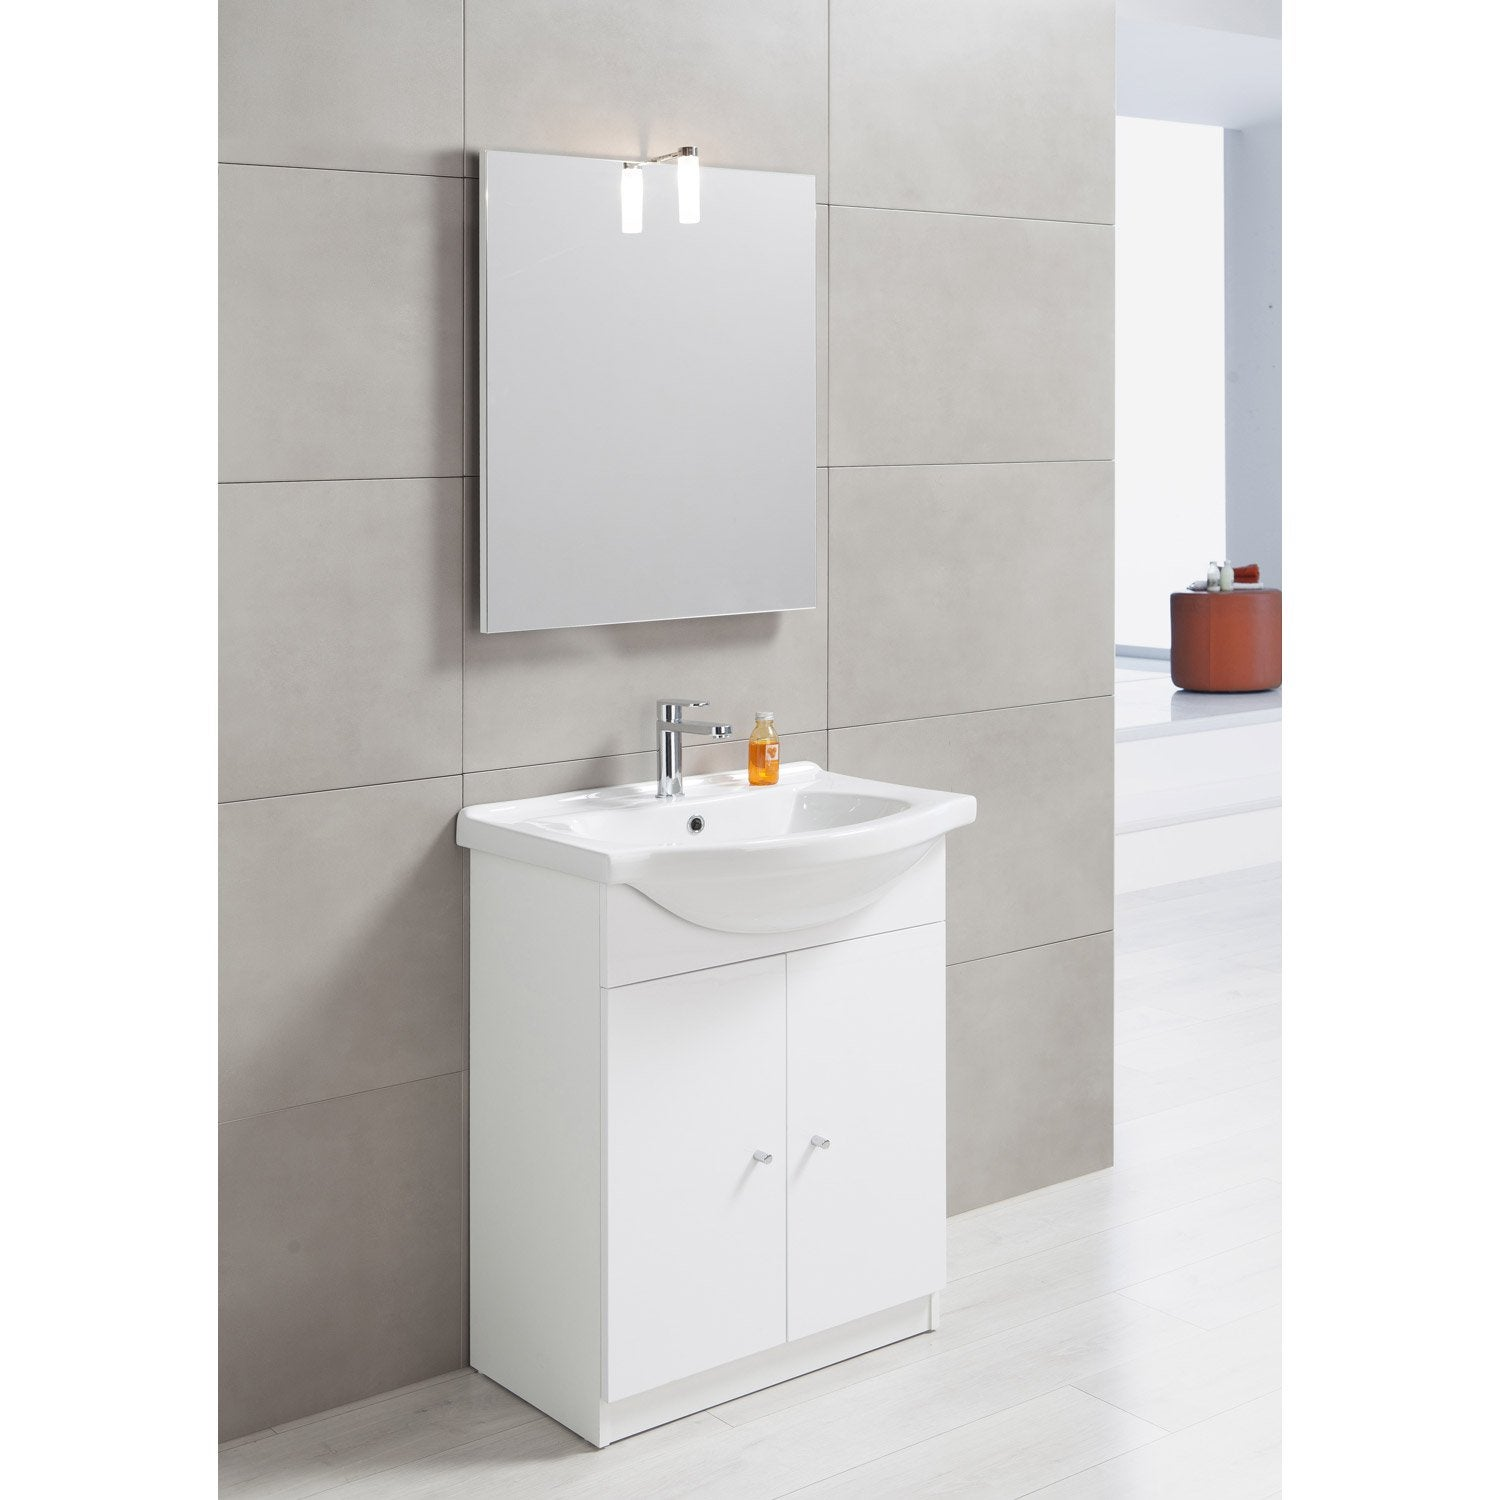 Meuble vasque x x cm blanc bianca leroy for Sous lavabo leroy merlin